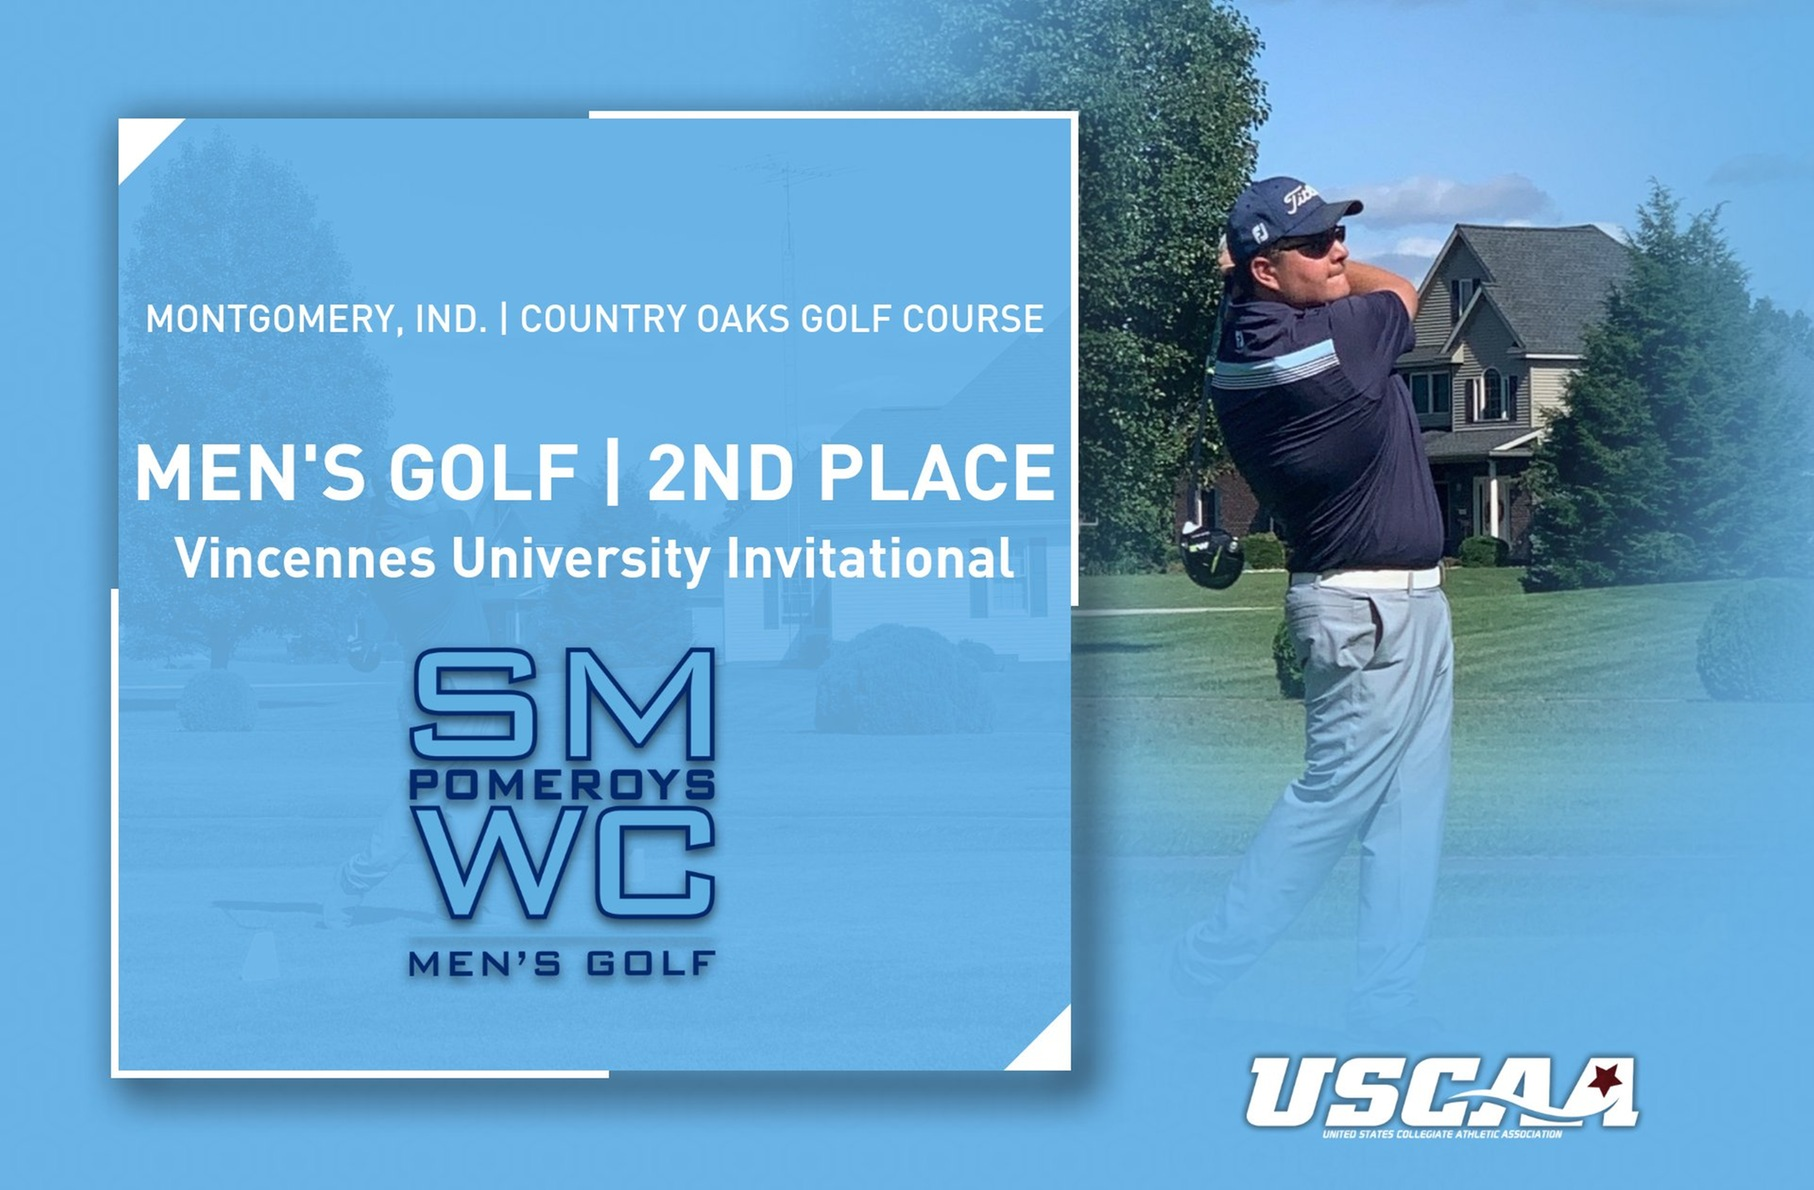 Men's Golf Places 2nd at Vincennes Invitational Behind Kuppler, Higbie